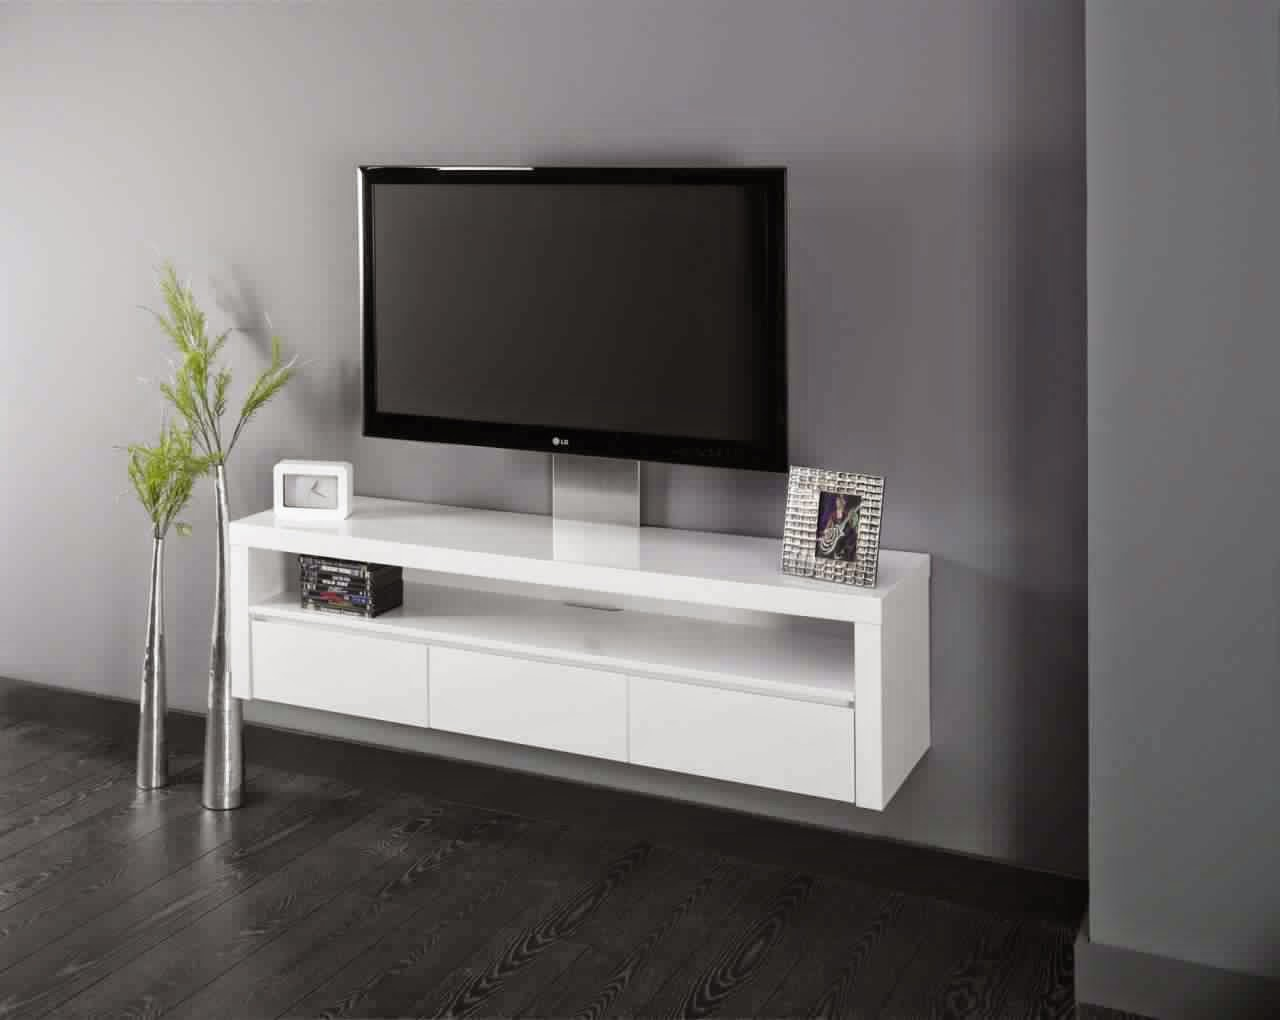 Meuble Tele Au Mur Ikea - Ikea Meuble Tv Suspendu Fashion Designs[mjhdah]http://www.brainjobs.us/list/13607/best%C3%A5-tv-storage-combination-black-brown-selsviken-high-gloss-beige__0362160_pe546344_s5.jpg